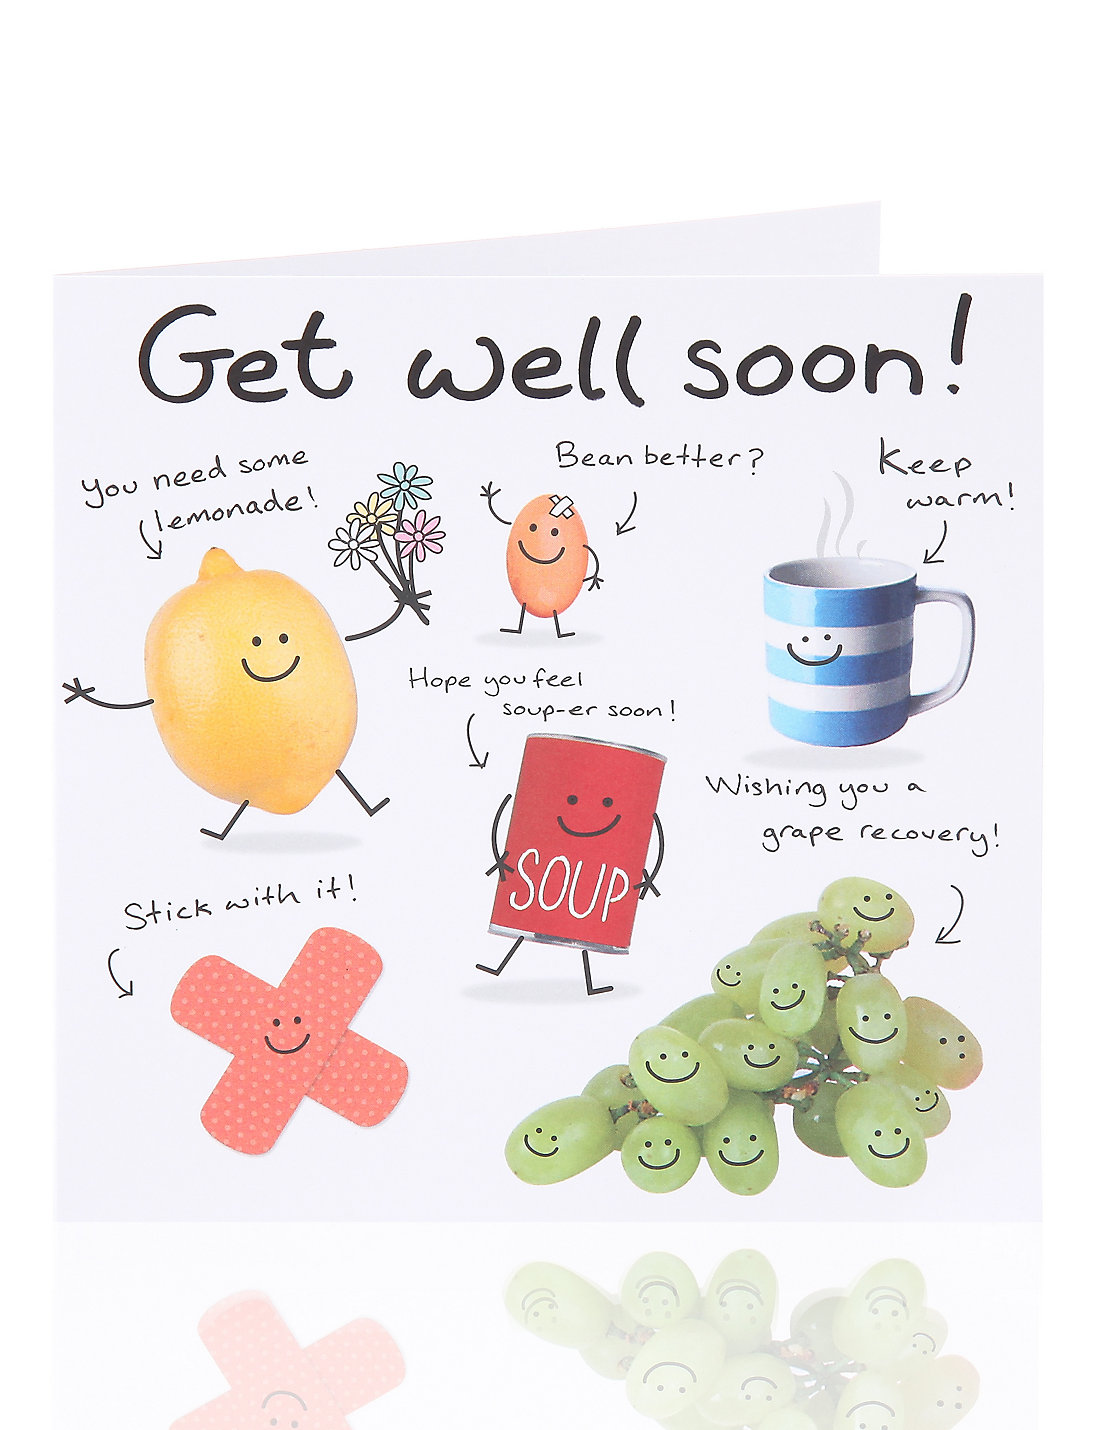 Get well soon greetings card ms get well soon greetings card kristyandbryce Image collections